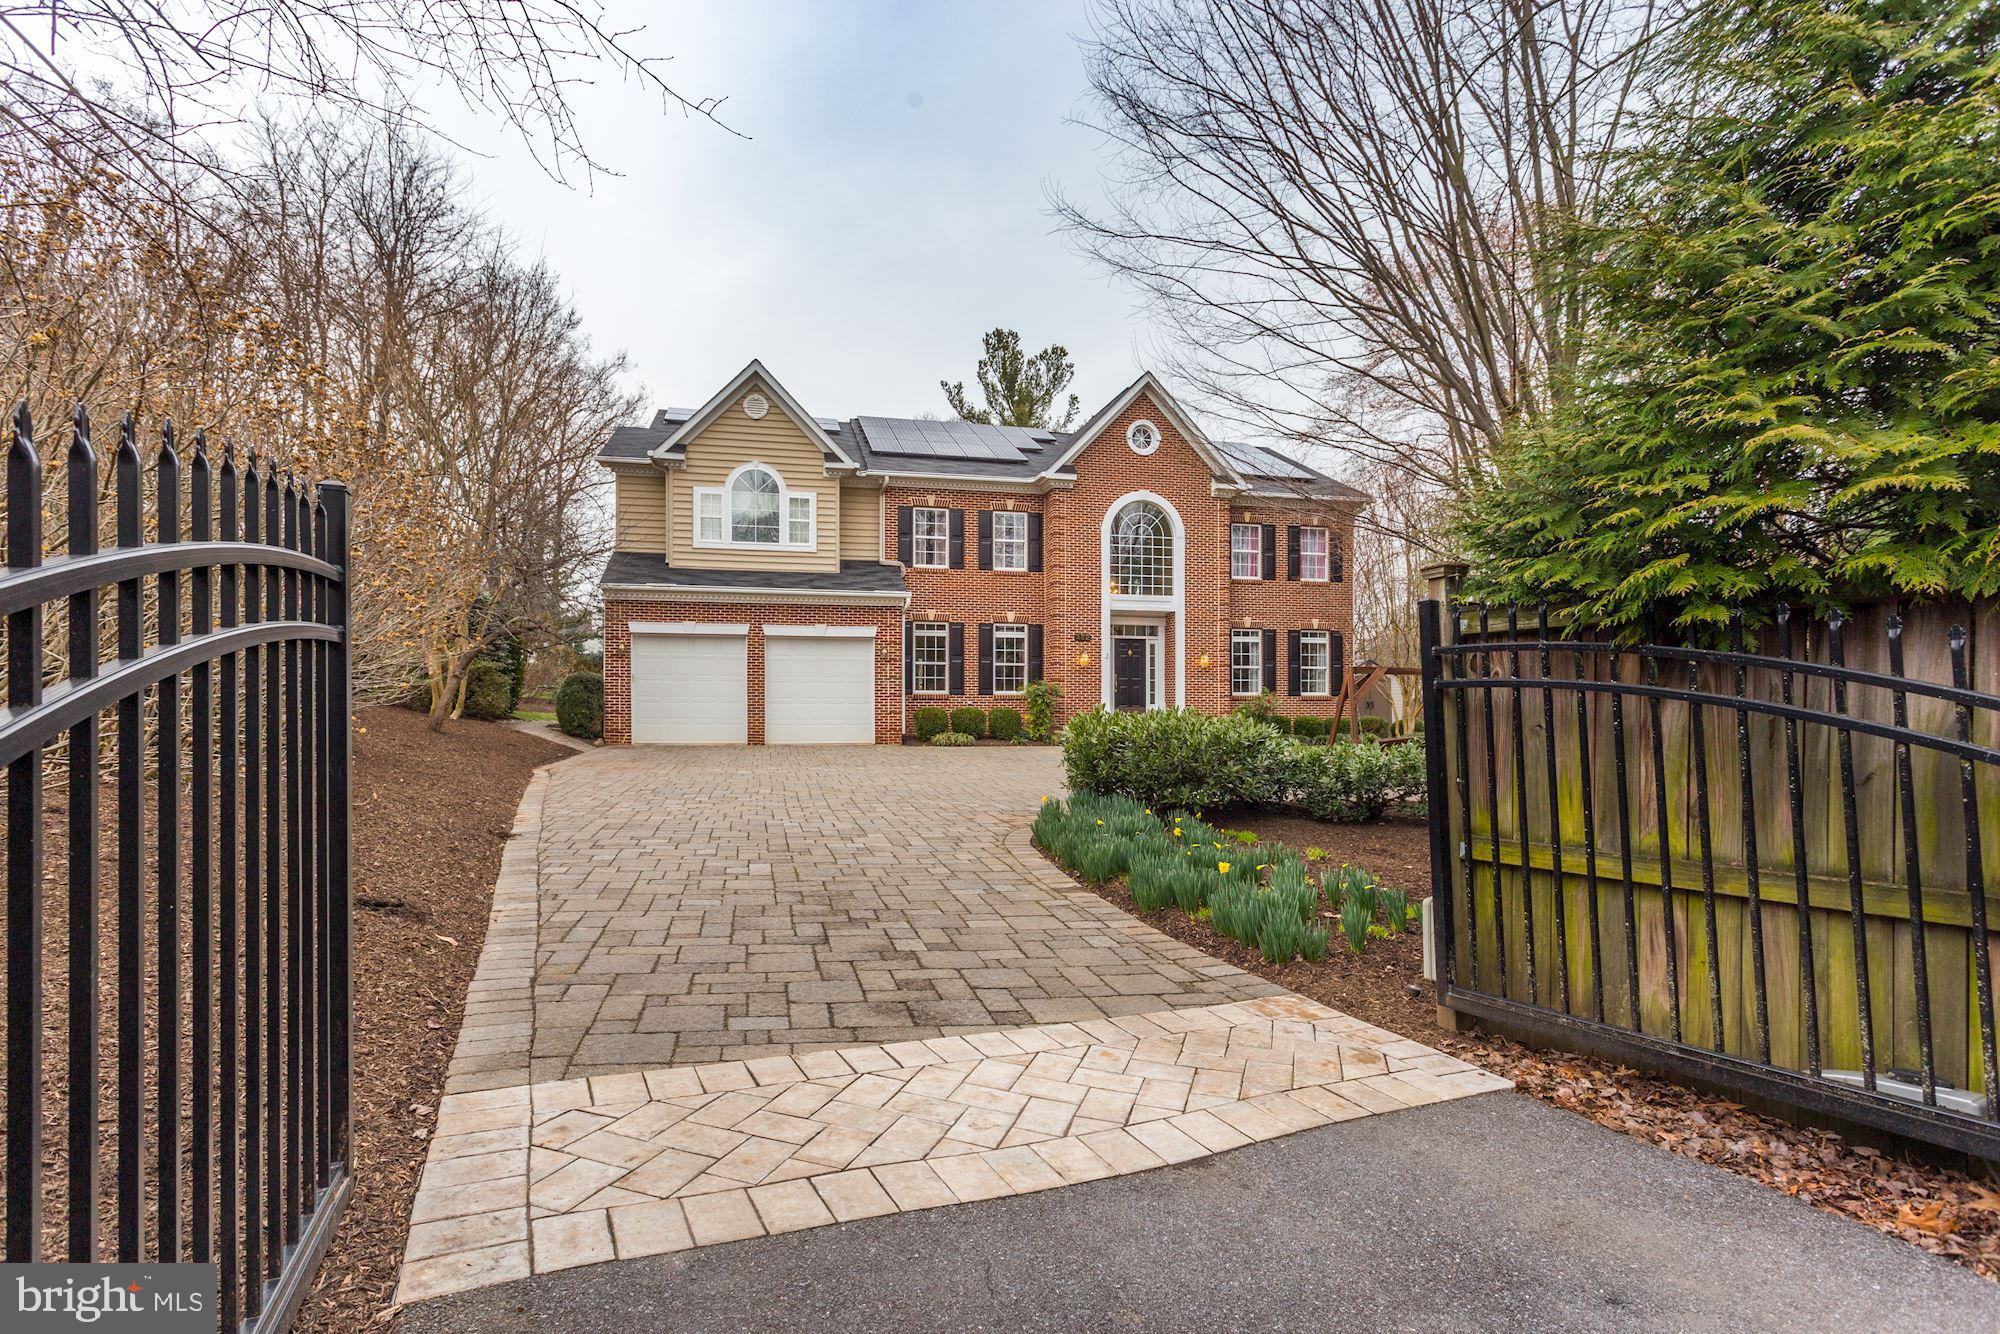 352 RIDGE ROAD, GAITHERSBURG, MD 20877